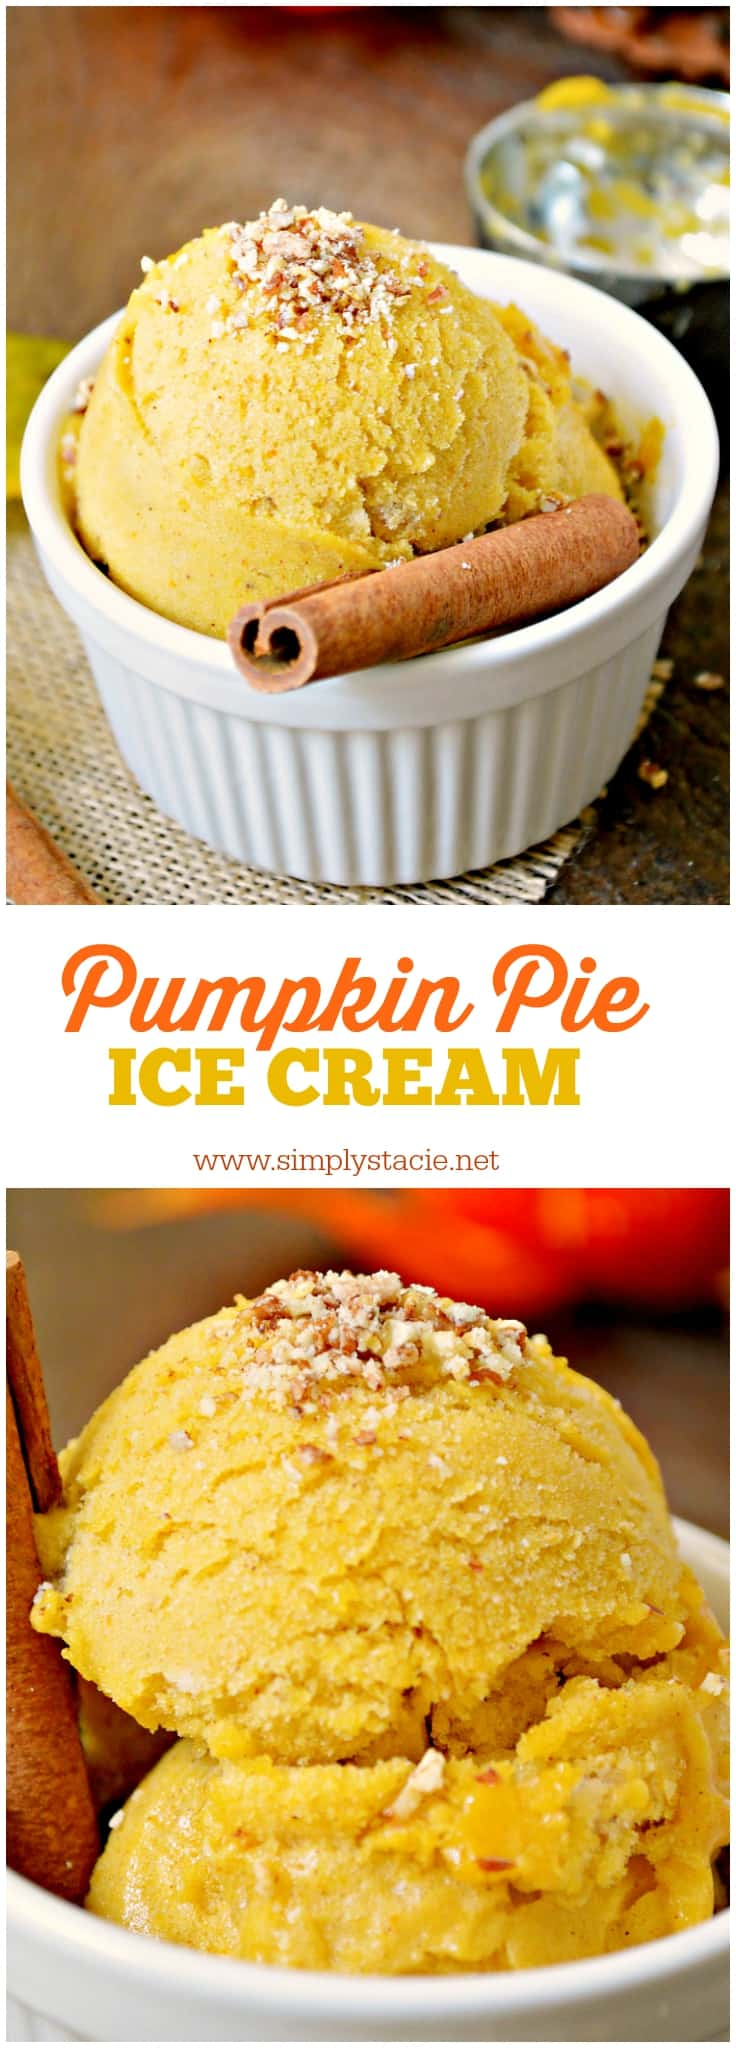 Pumpkin Pie Ice Cream - Luscious, creamy and perfect for fall, this Pumpkin Pie Ice Cream is a real treat. Plus, it's dairy-free and made with natural ingredients.